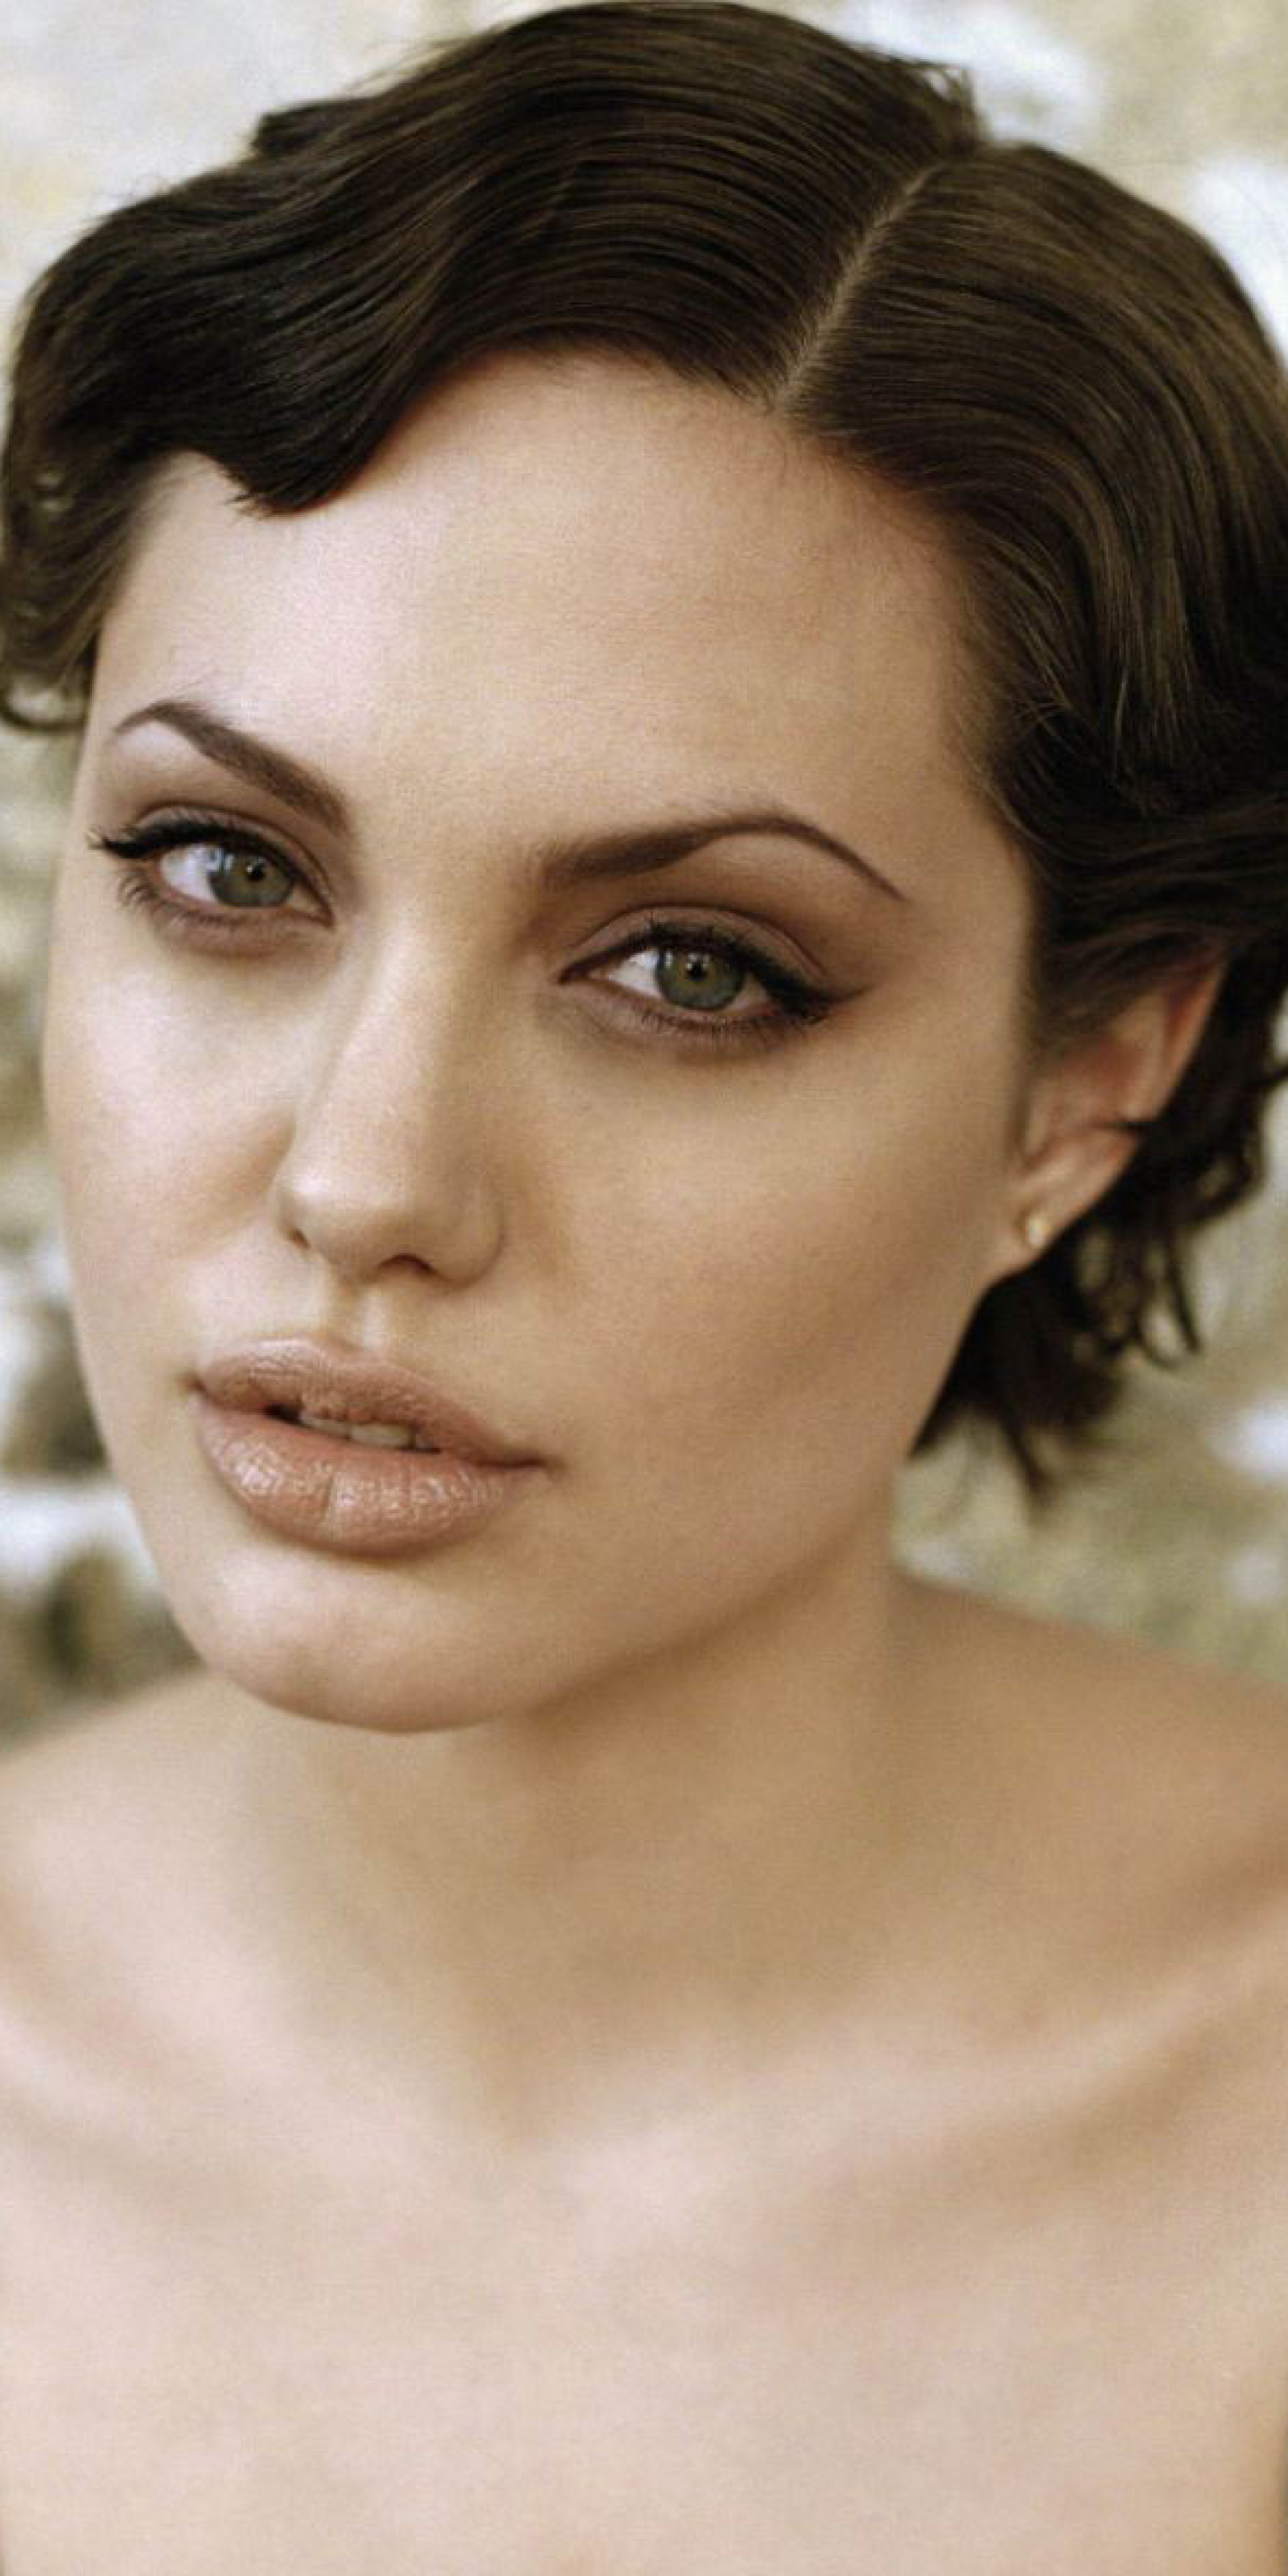 1440x2880 Angelina Jolie Short Hair Style Wallpaper 1440x2880 Resolution Wallpaper Hd Celebrities 4k Wallpapers Images Photos And Background